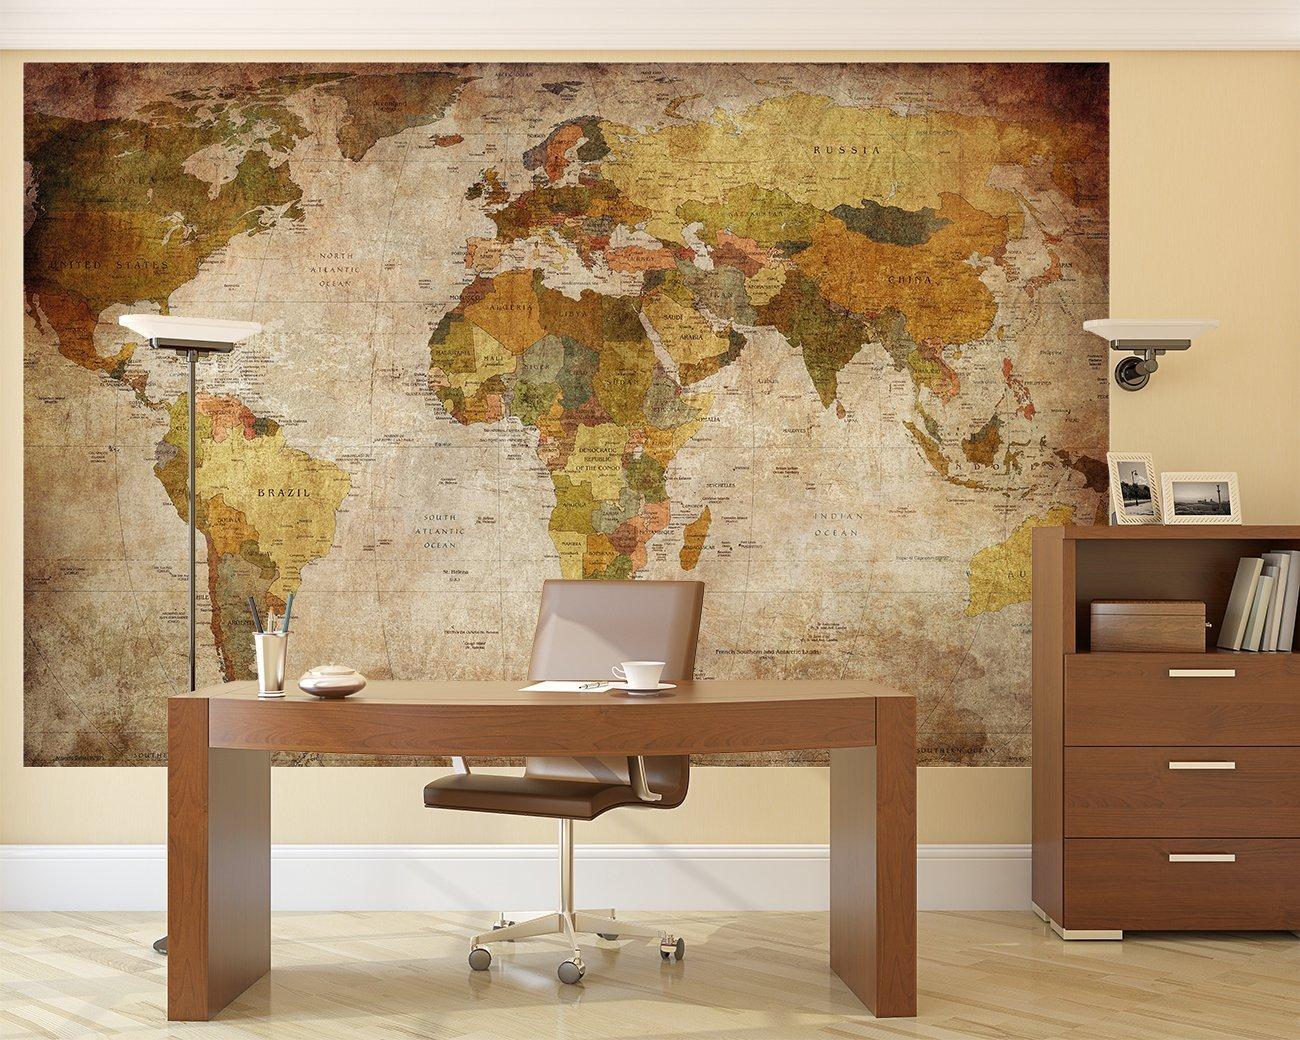 Amazon lb prepasted wall mural foto wall decor world map amazon lb prepasted wall mural foto wall decor world map 827 inch 555 inch with bonus only for you baby gumiabroncs Gallery